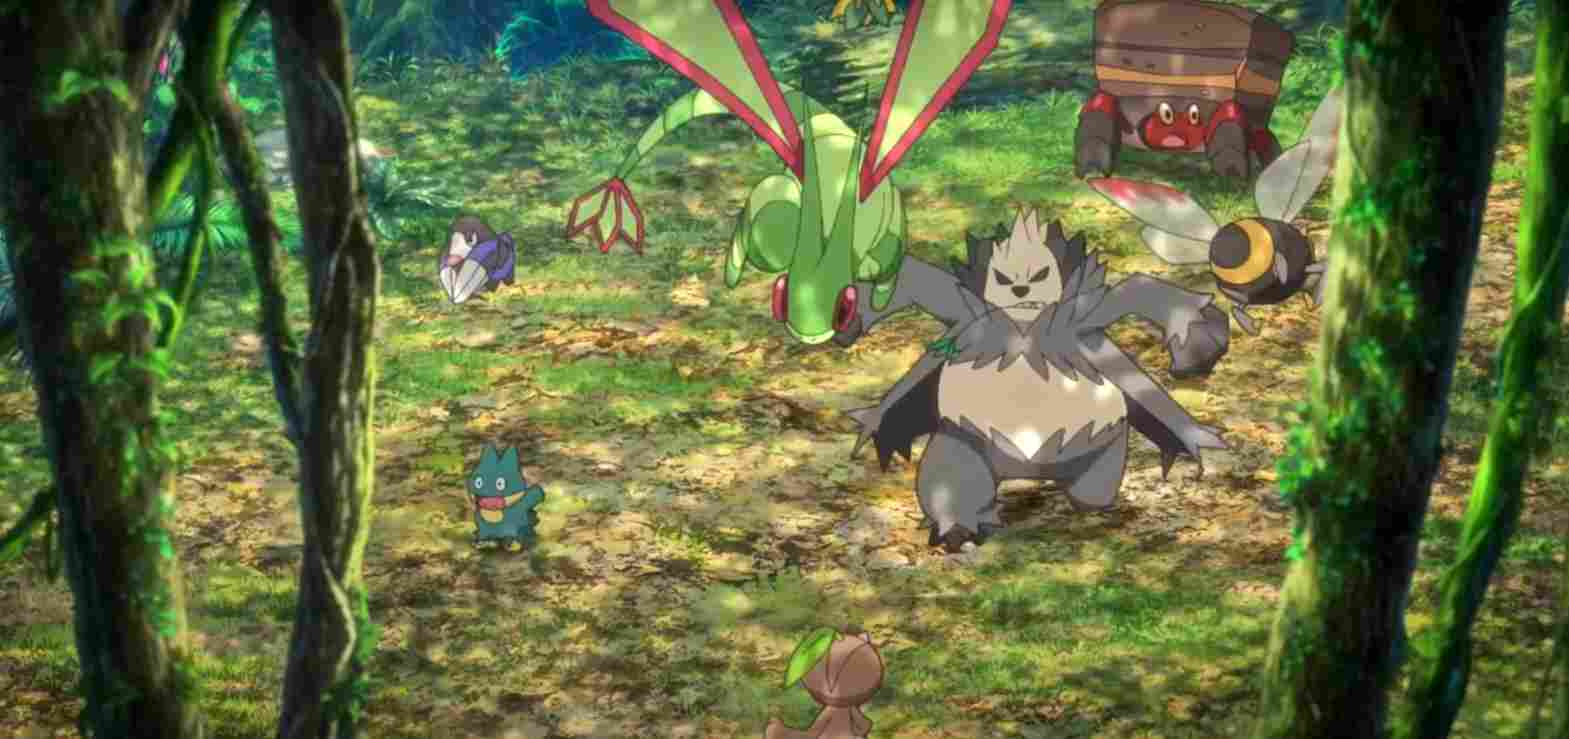 Pokémon the Movie: Secrets of the Jungle is coming to Netflix